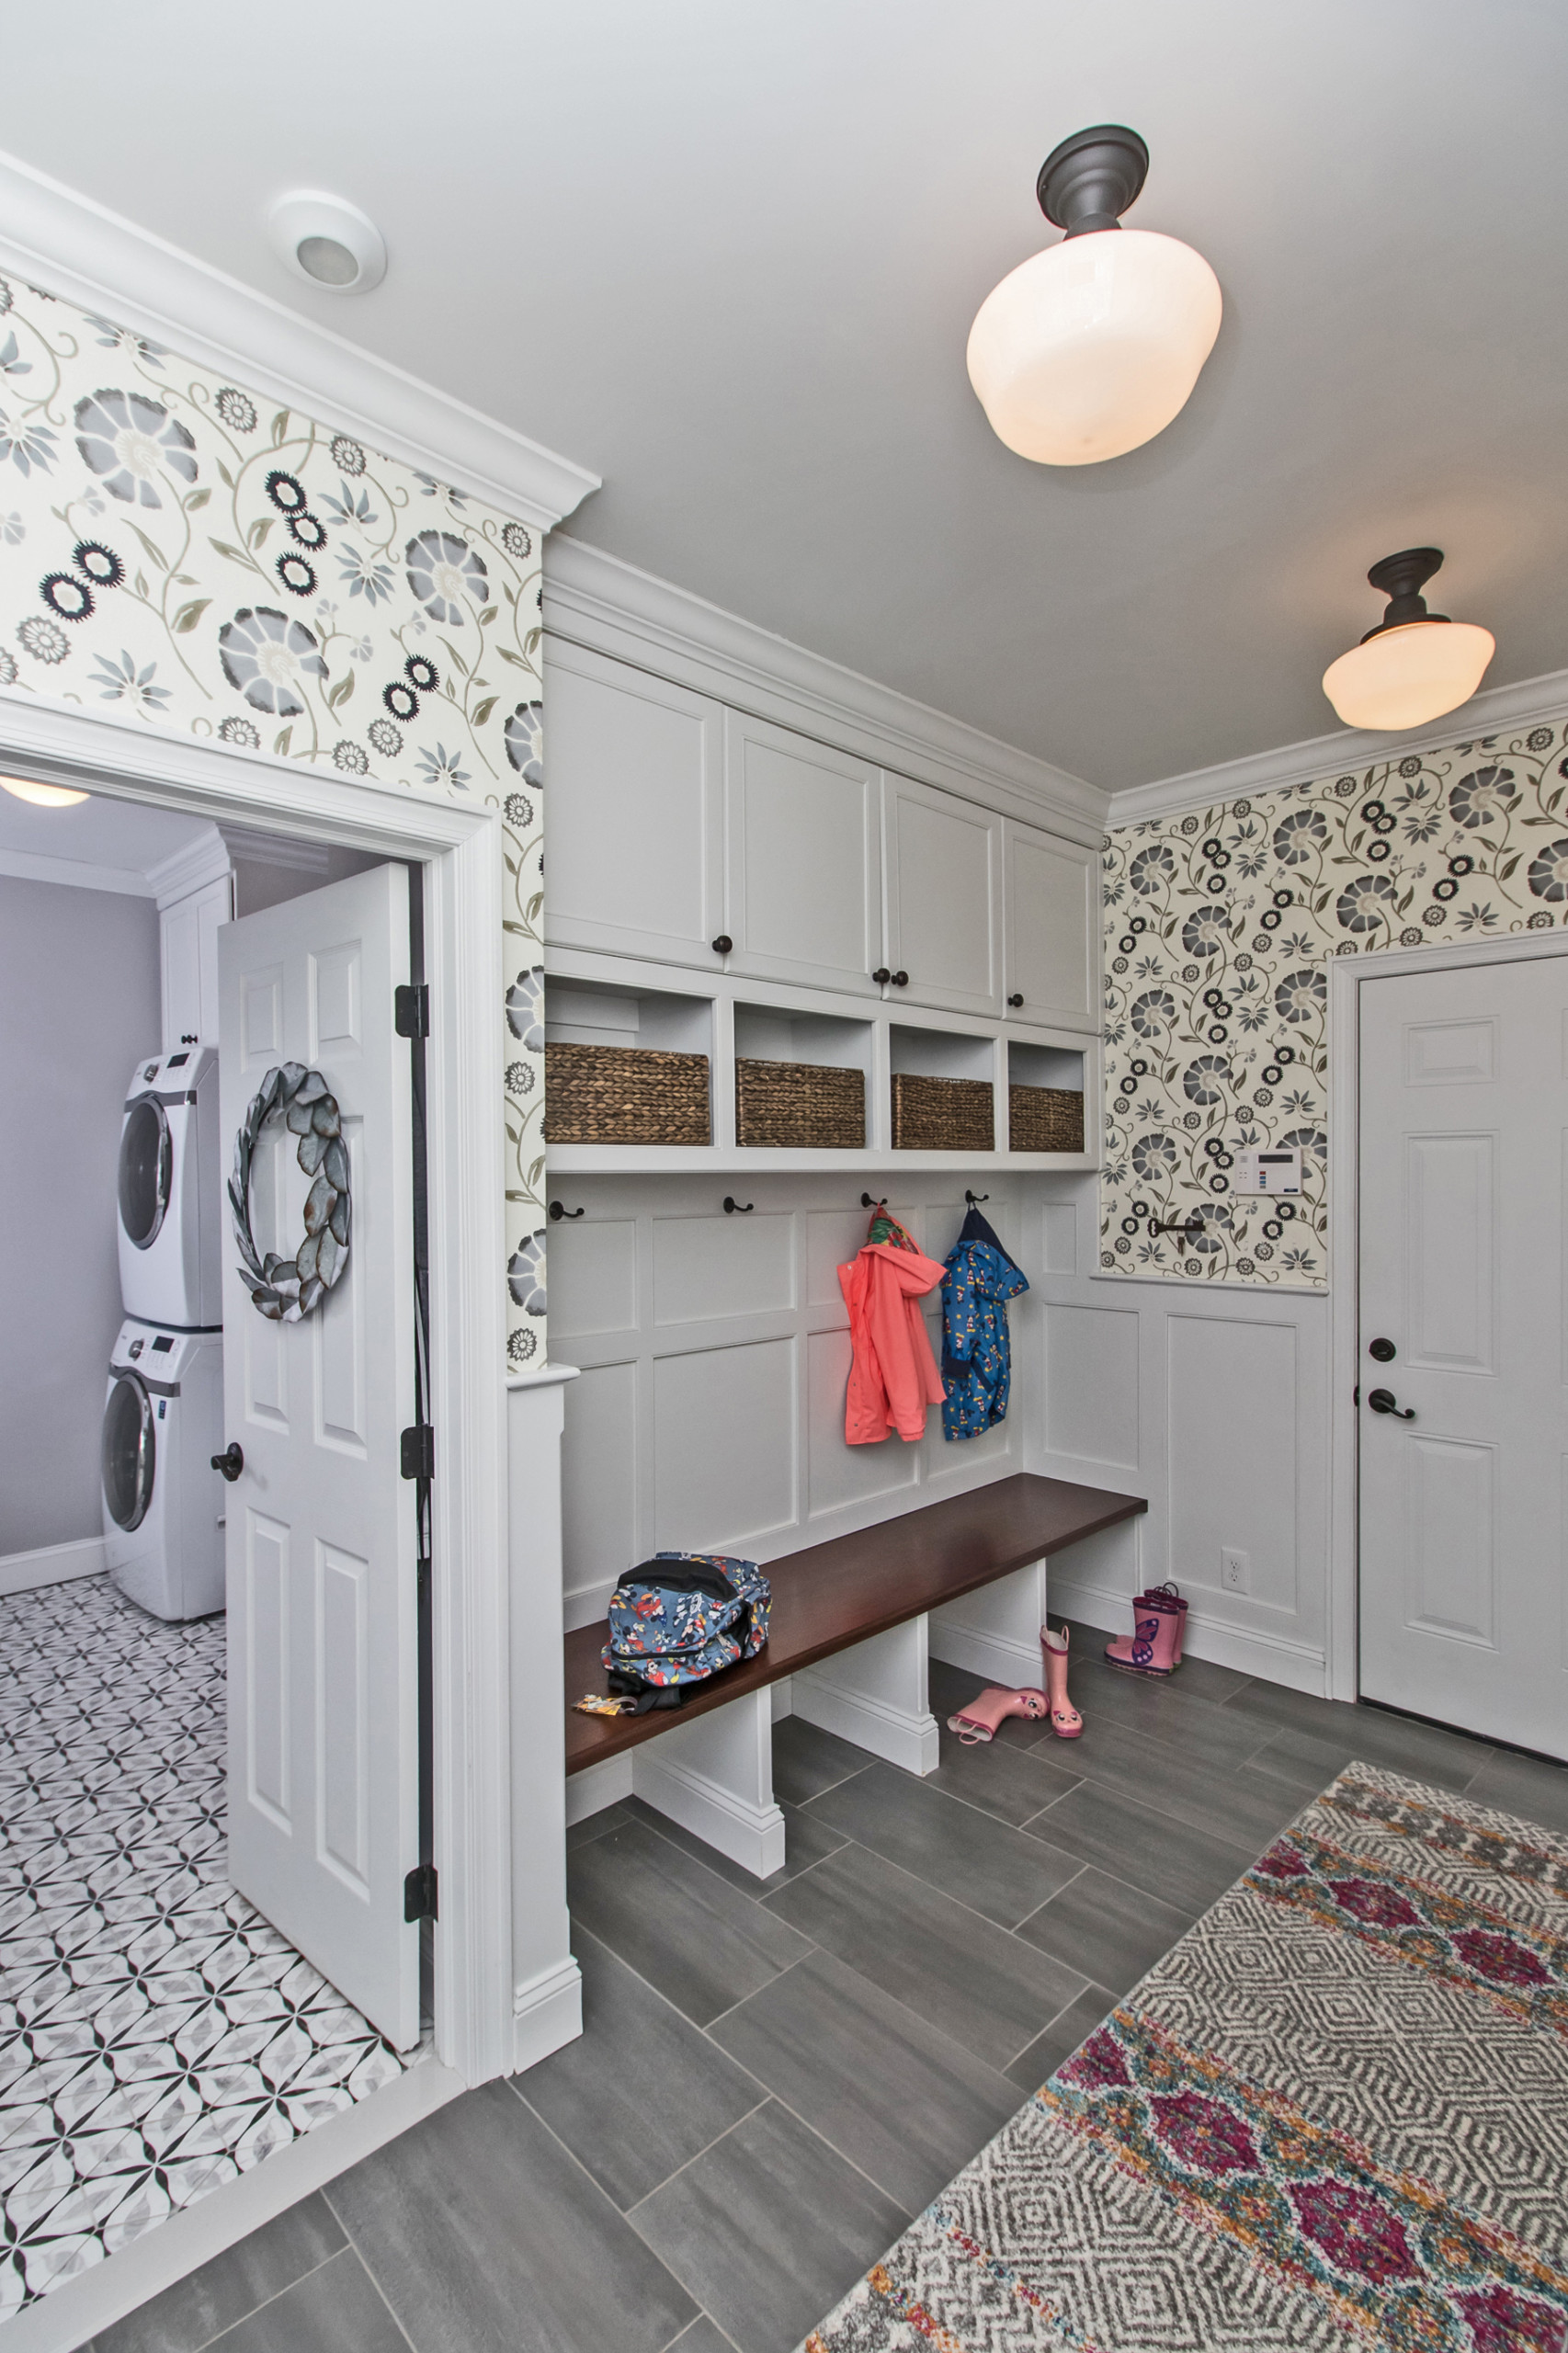 Mud Room & Laundry Room